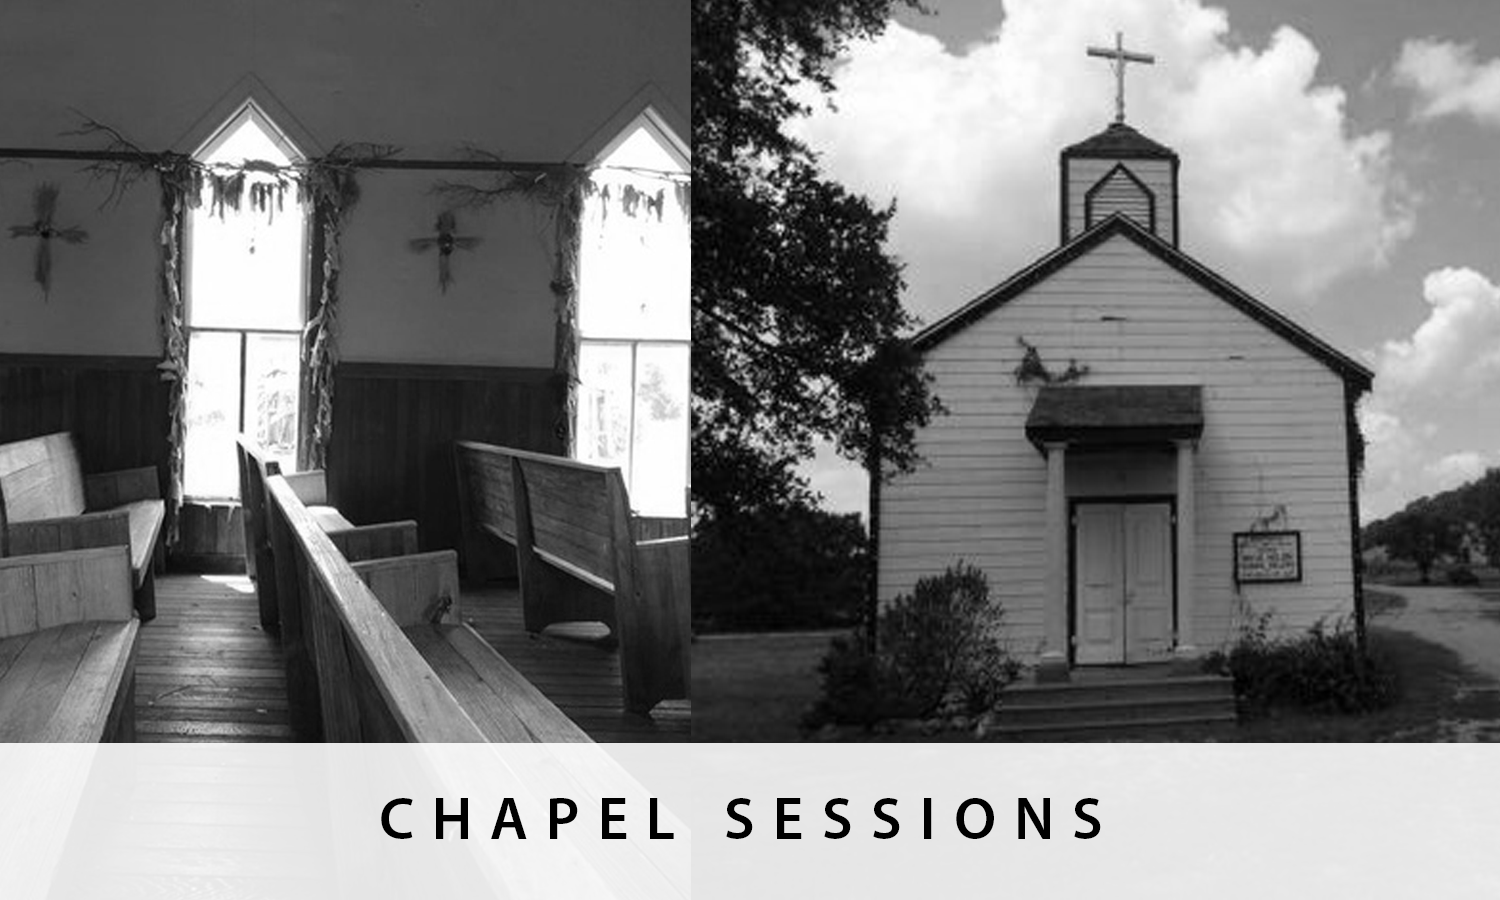 LUCK CHAPEL SESSIONS